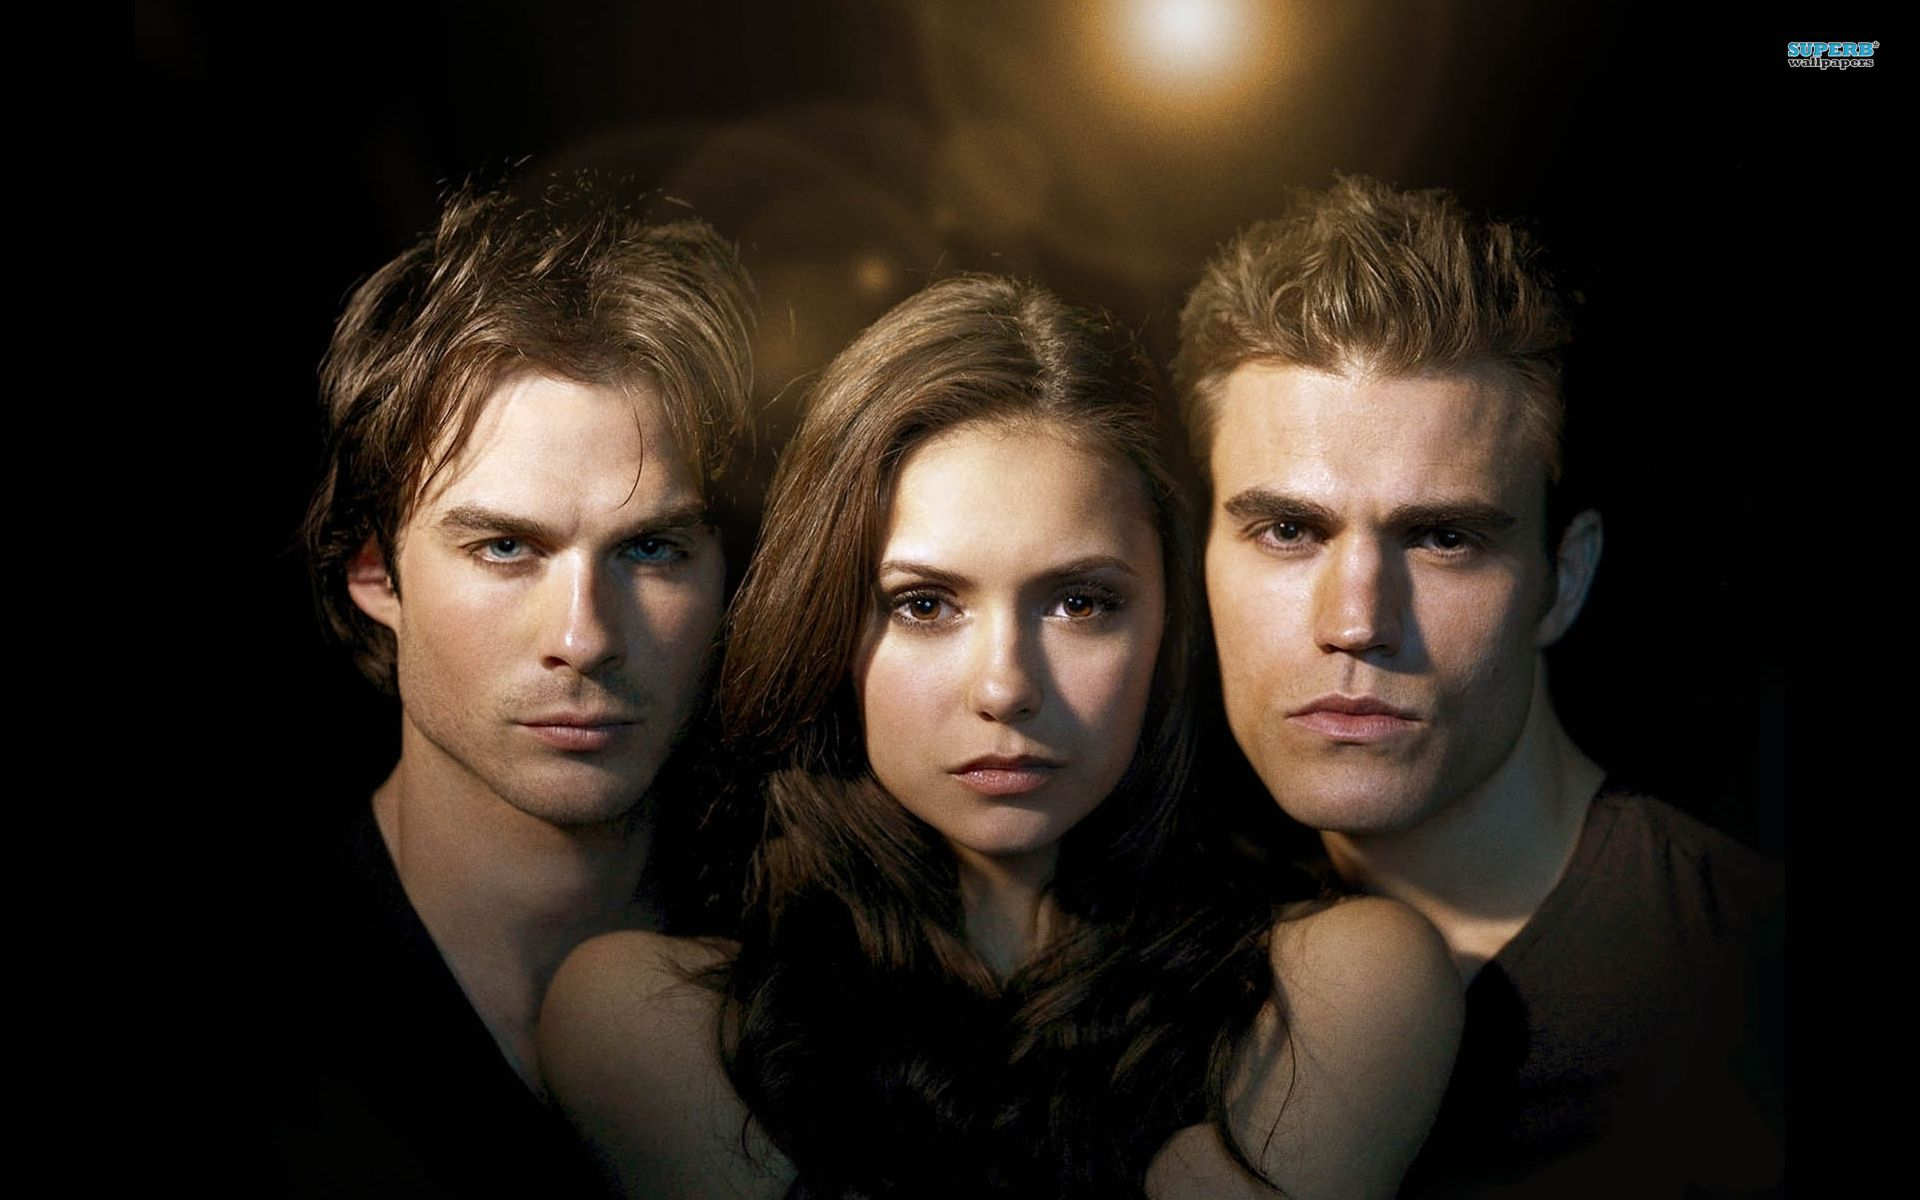 Vampire Diaries wallpaper | 1920x1200 | #44187